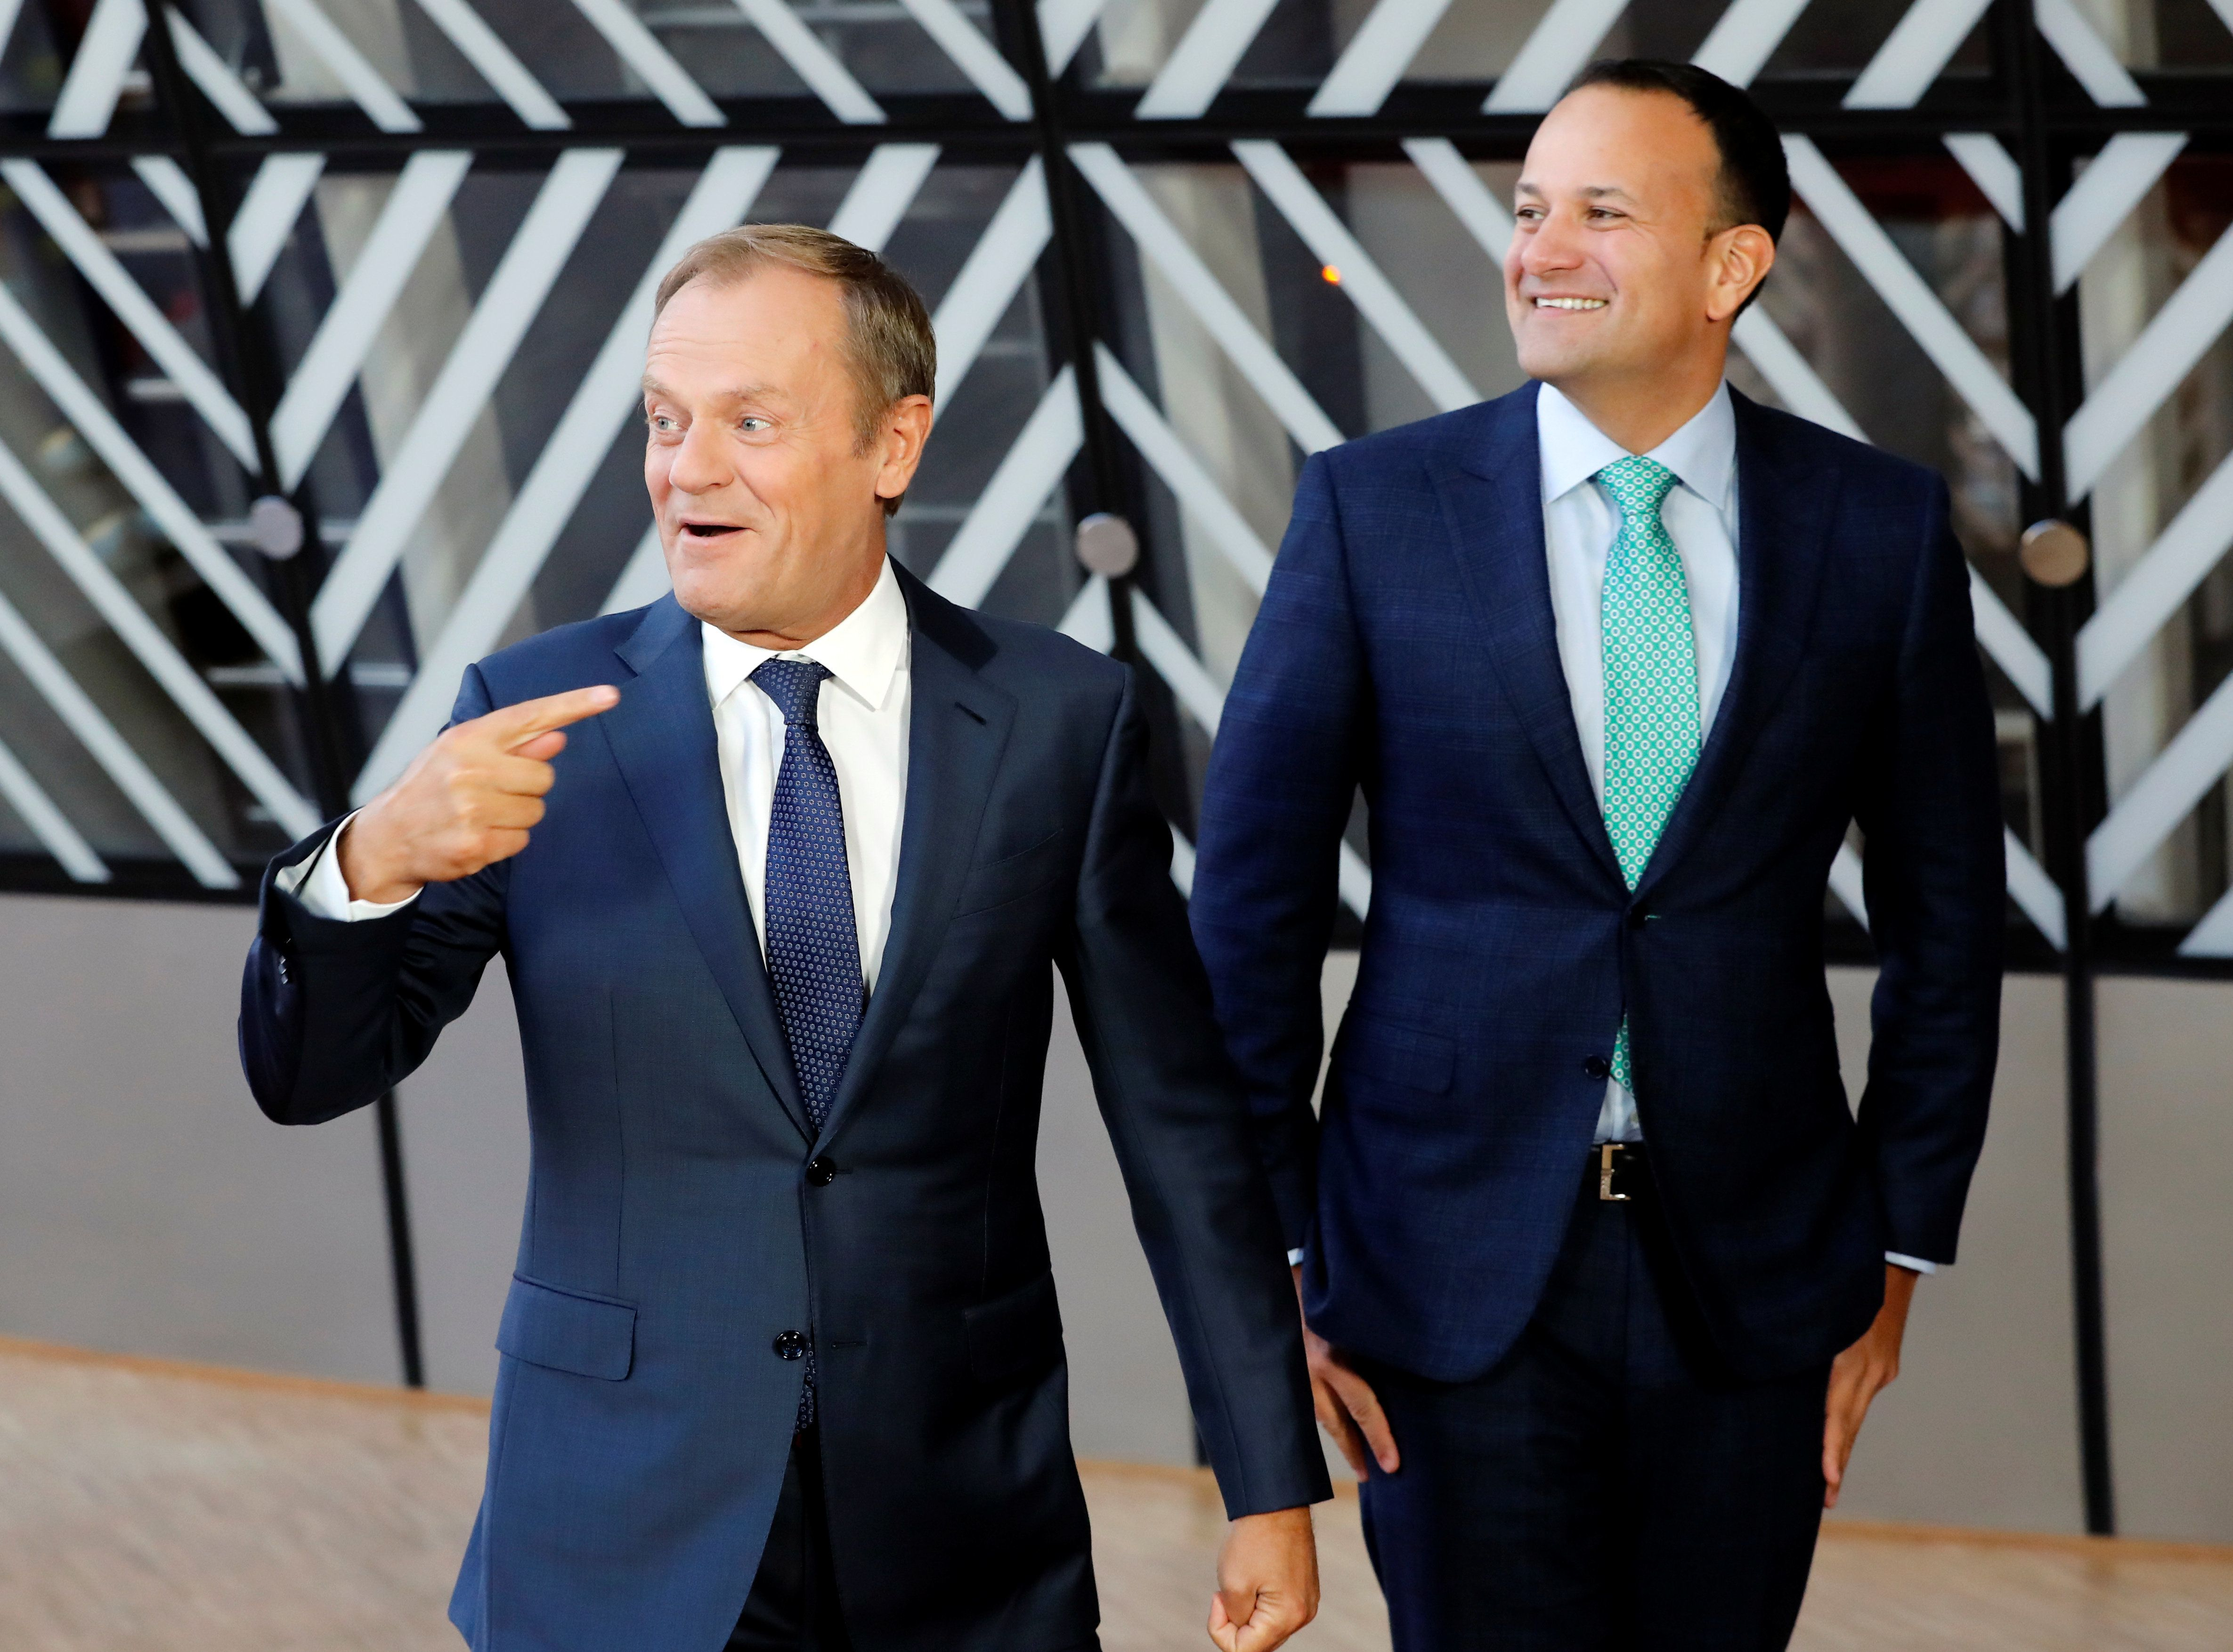 Ireland's Prime Minister Leo Varadkar is welcomed by European Council President Donald Tusk ahead of...